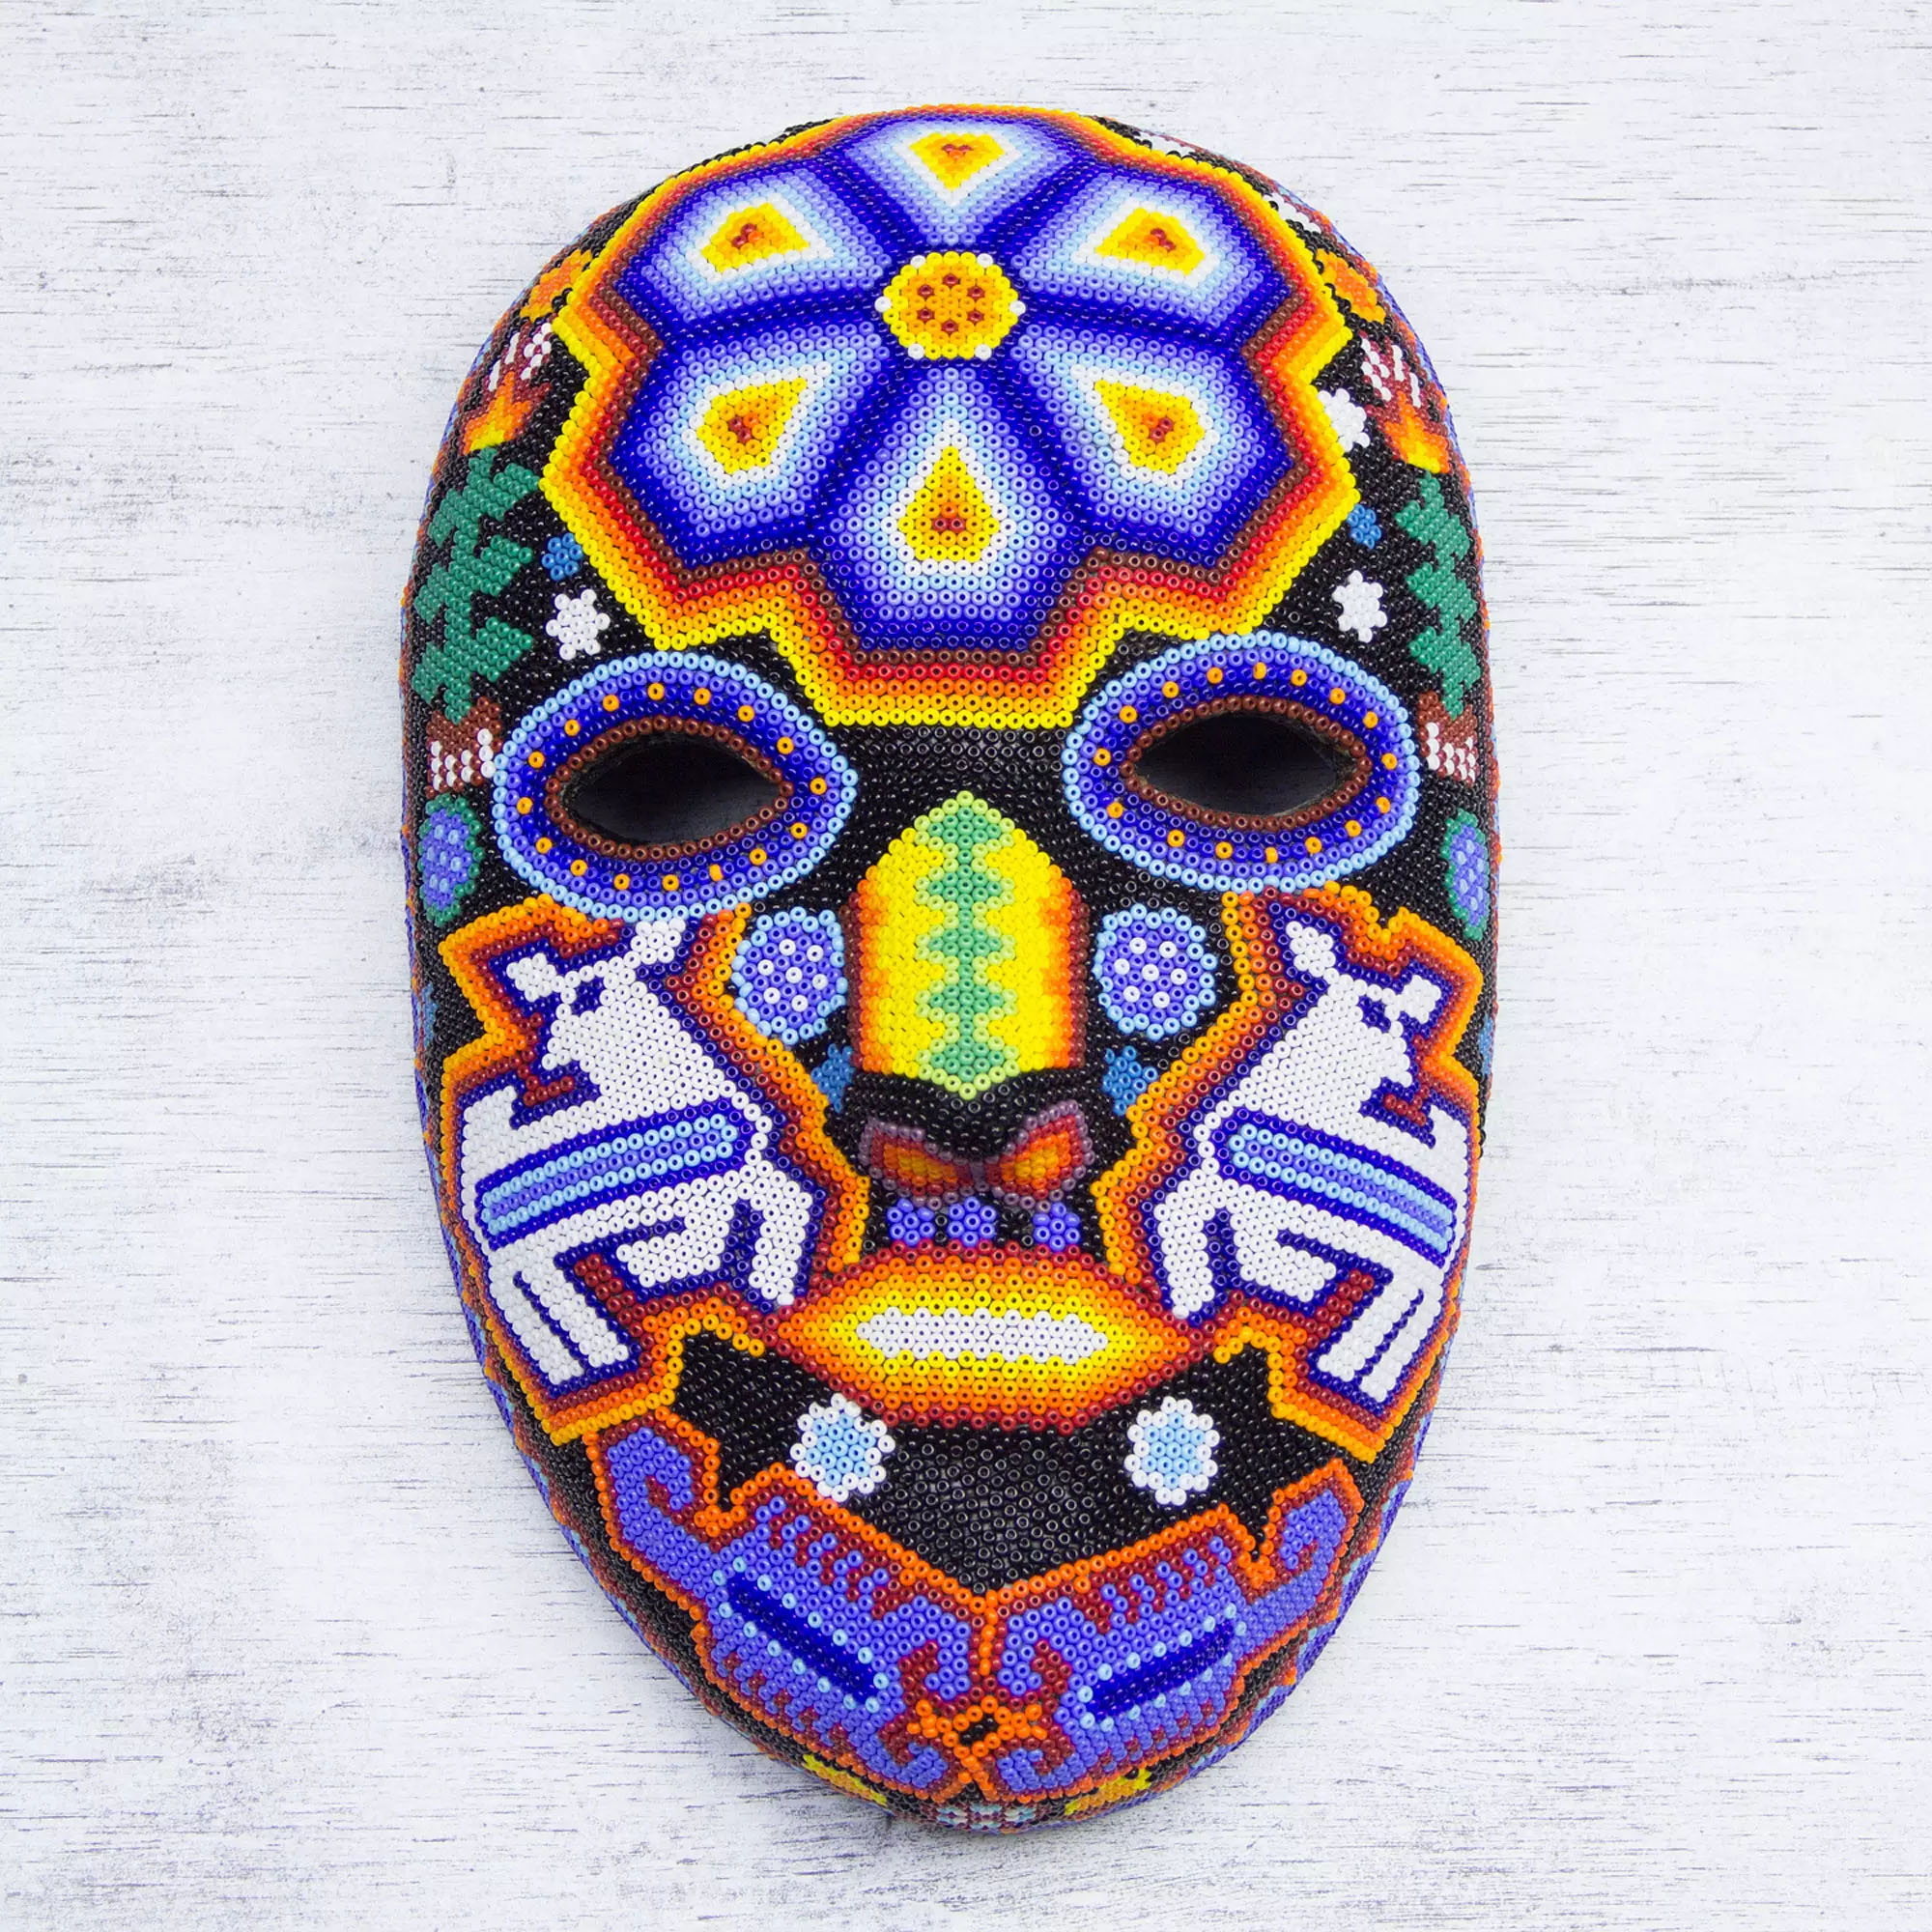 Shaman Deer Authentic Mexican Multicolor Beadwork Mask Wall Art Decorating with Masks